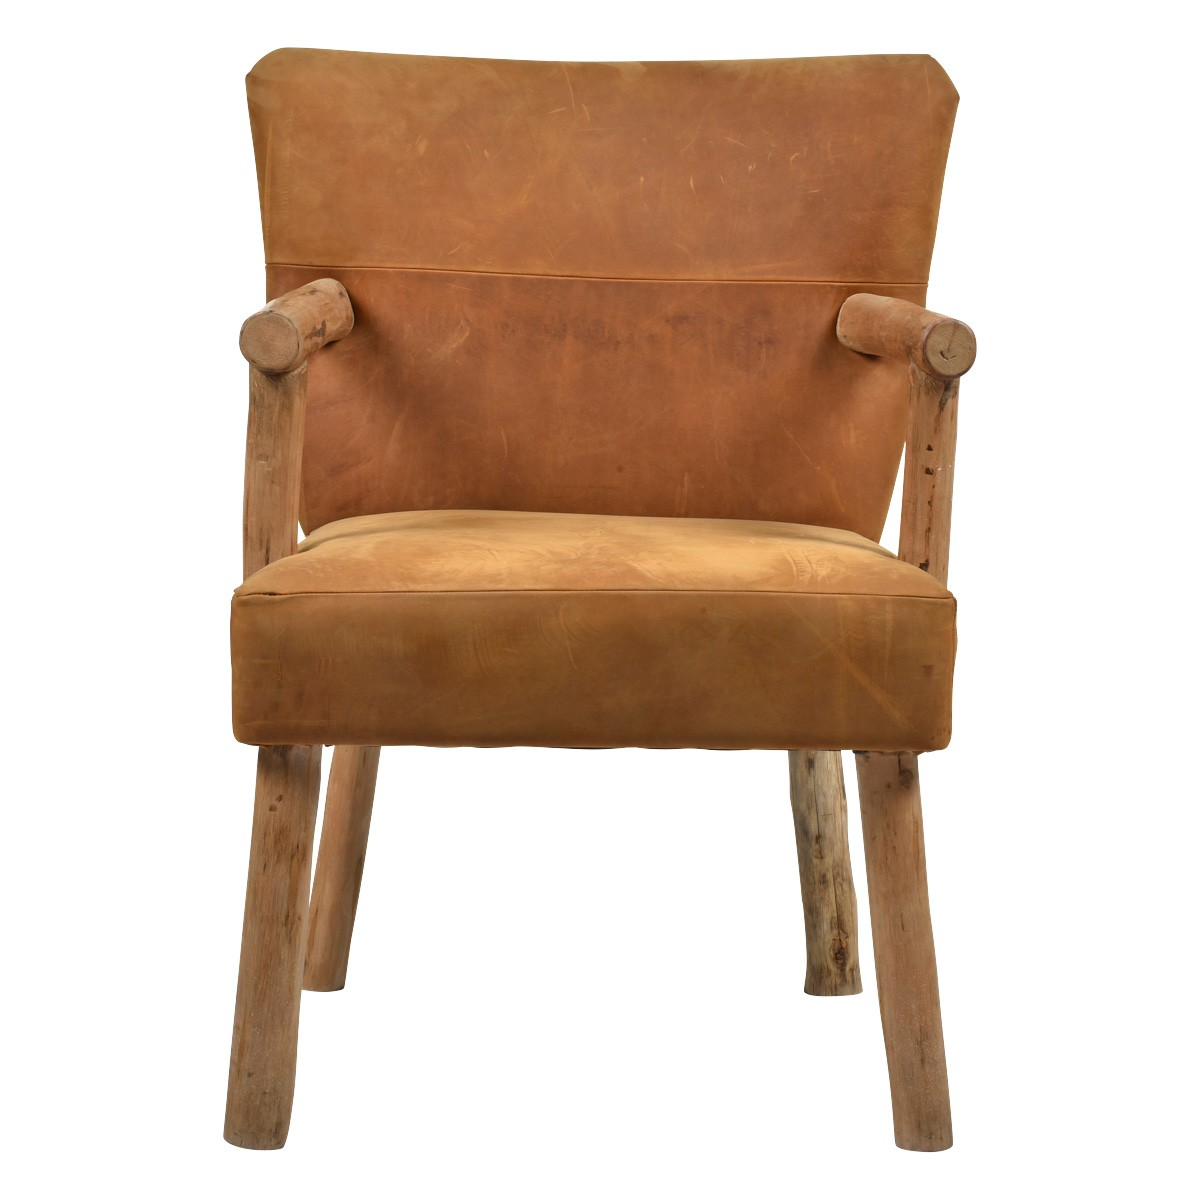 Palermo Leath & Timber Accent Armchair, Tan